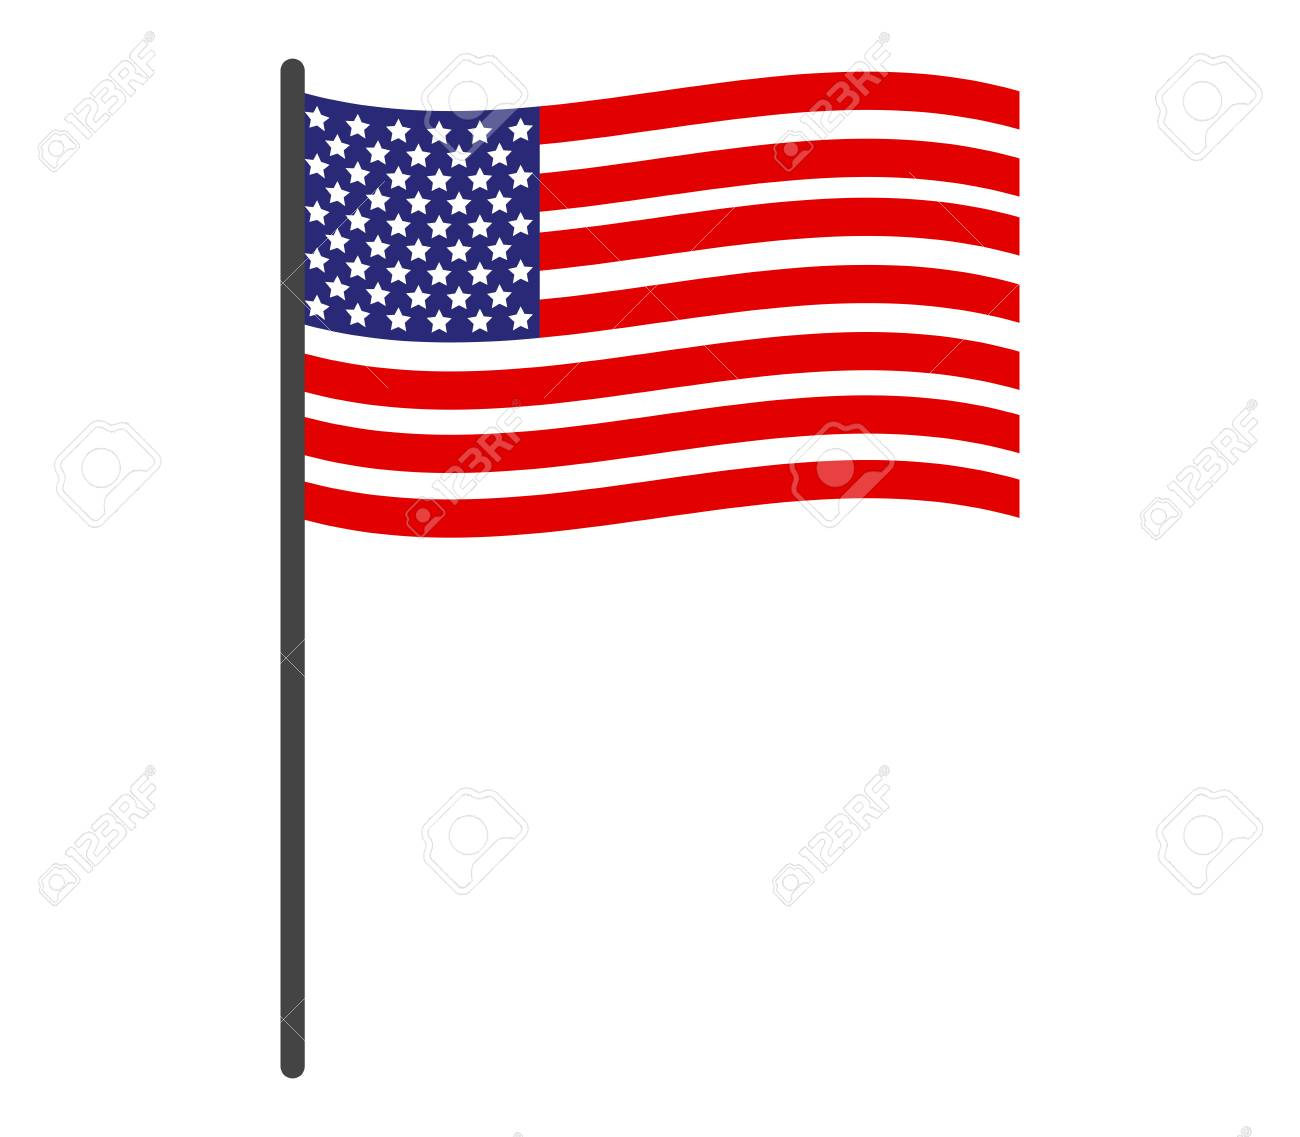 Image result for american flag icon